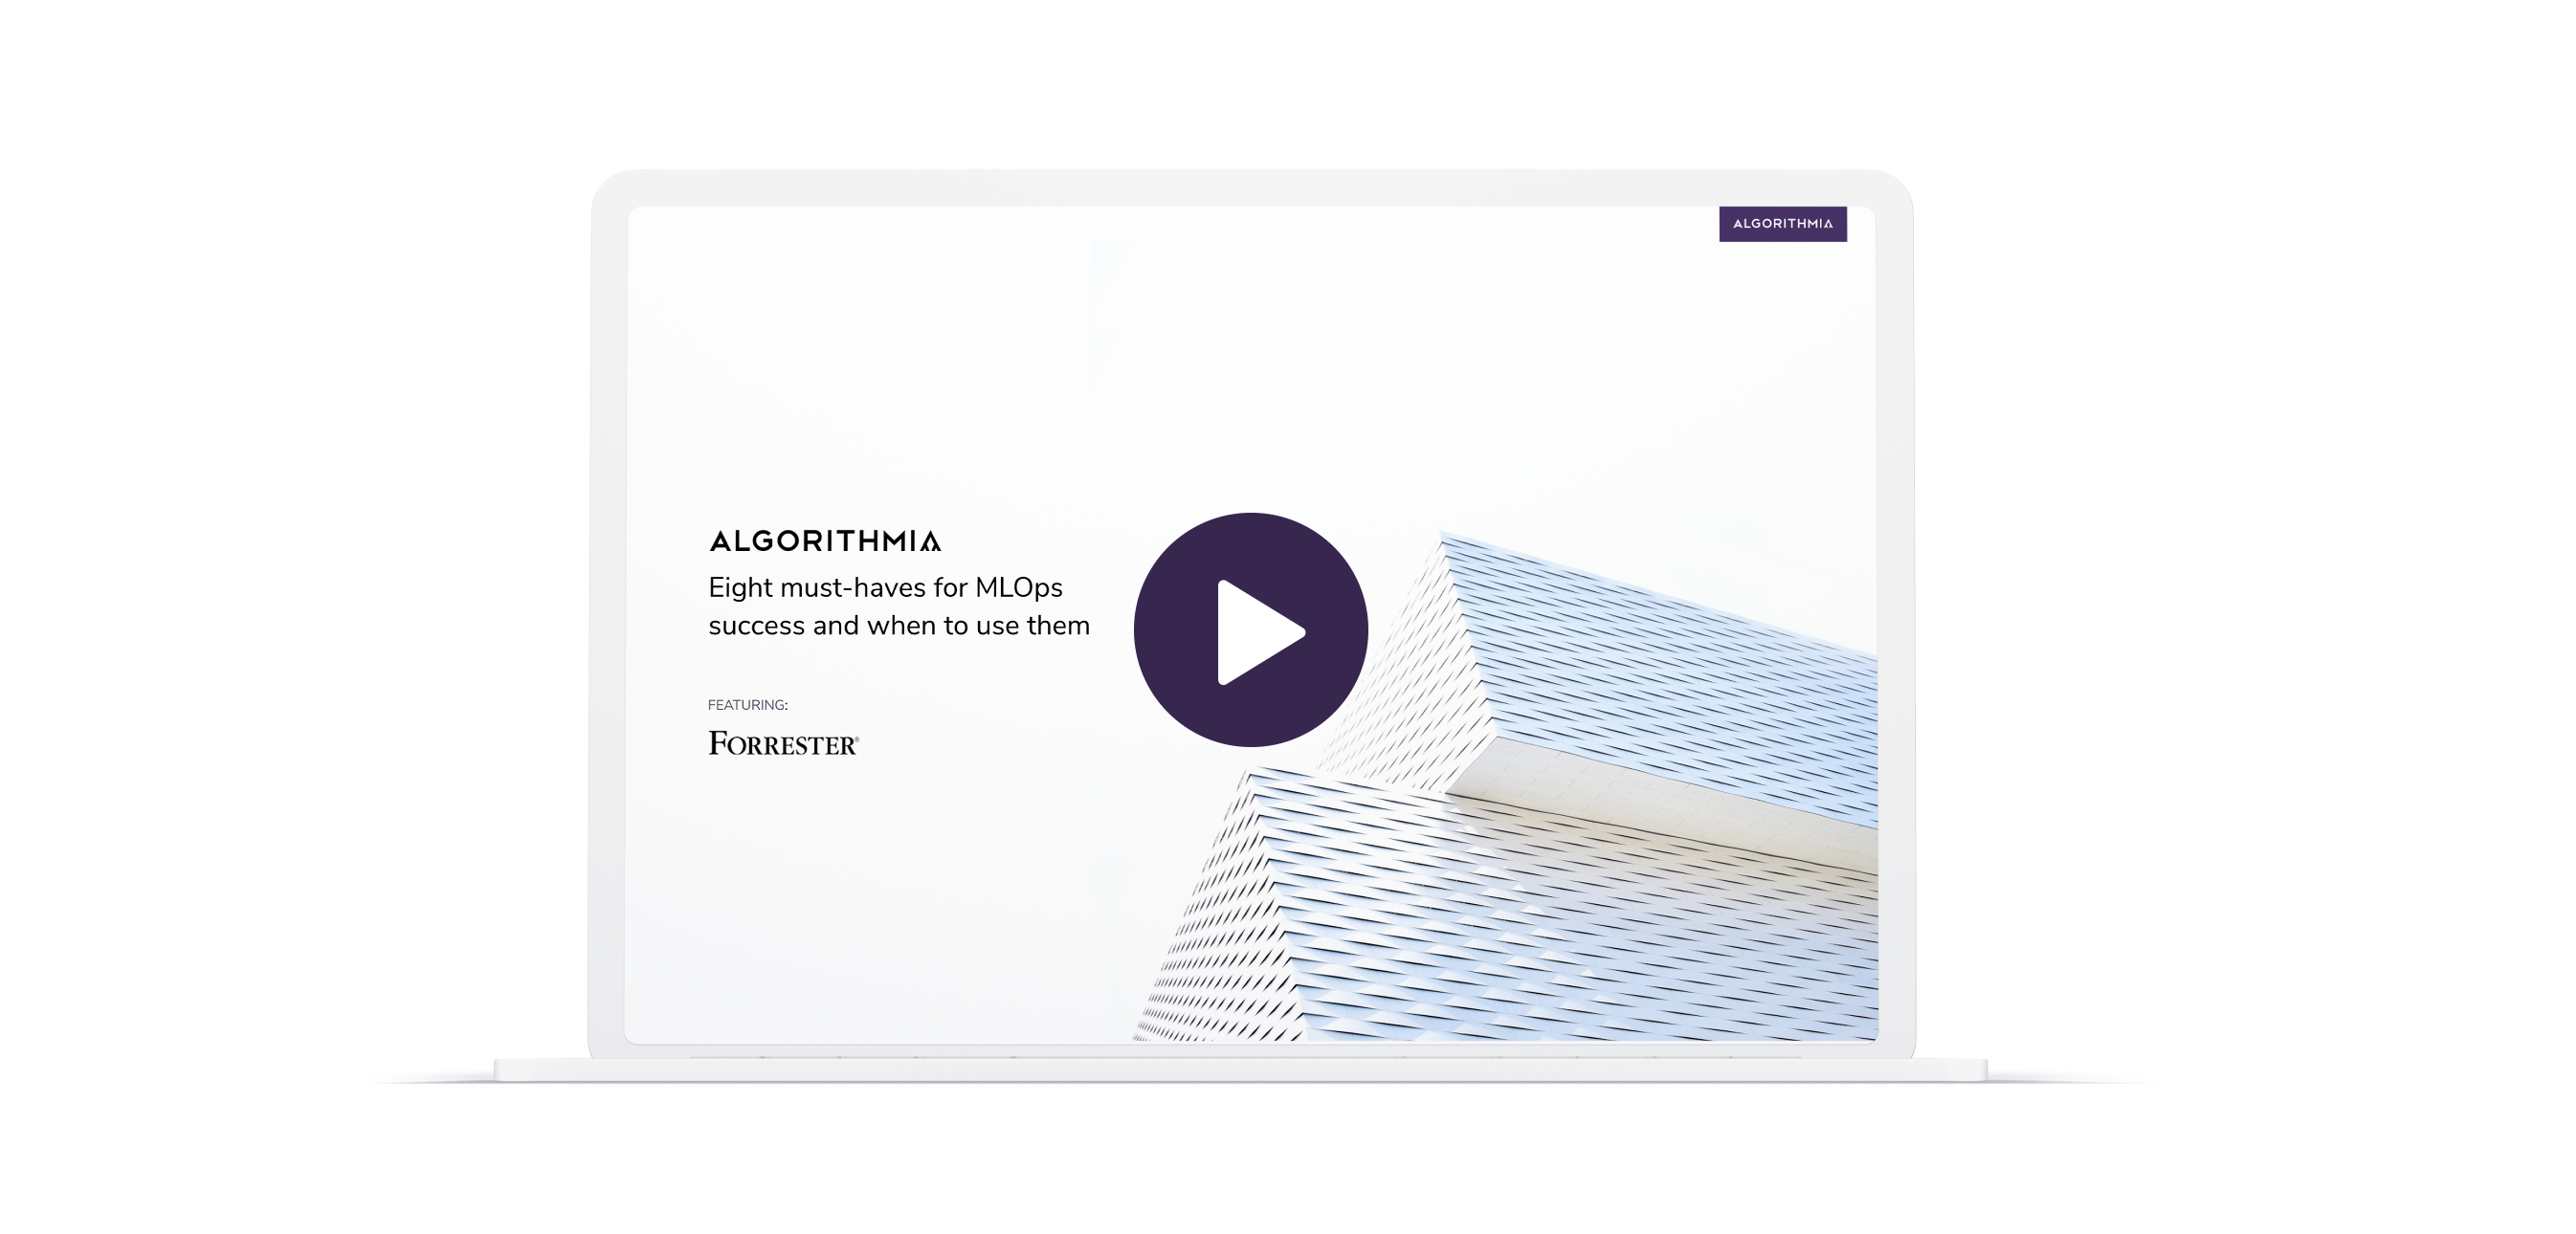 A laptop is open to show the opening title slide of the Algorithmia and Forrester webinar. A purple play button is over the slide.